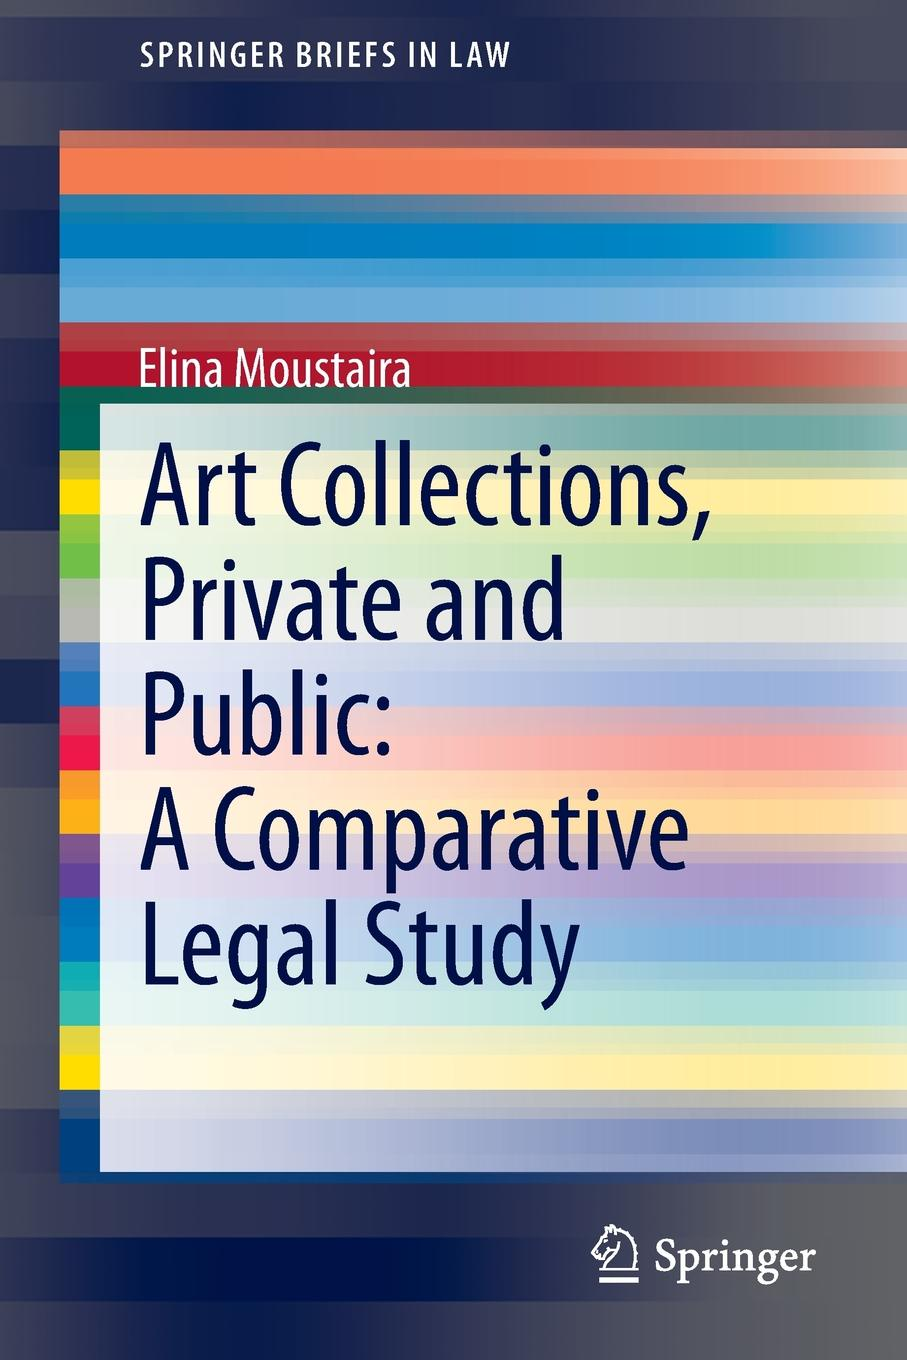 Elina Moustaira Art Collections, Private and Public. A Comparative Legal Study knowledge management practices in public organization a comparative and exploratory study with private organization